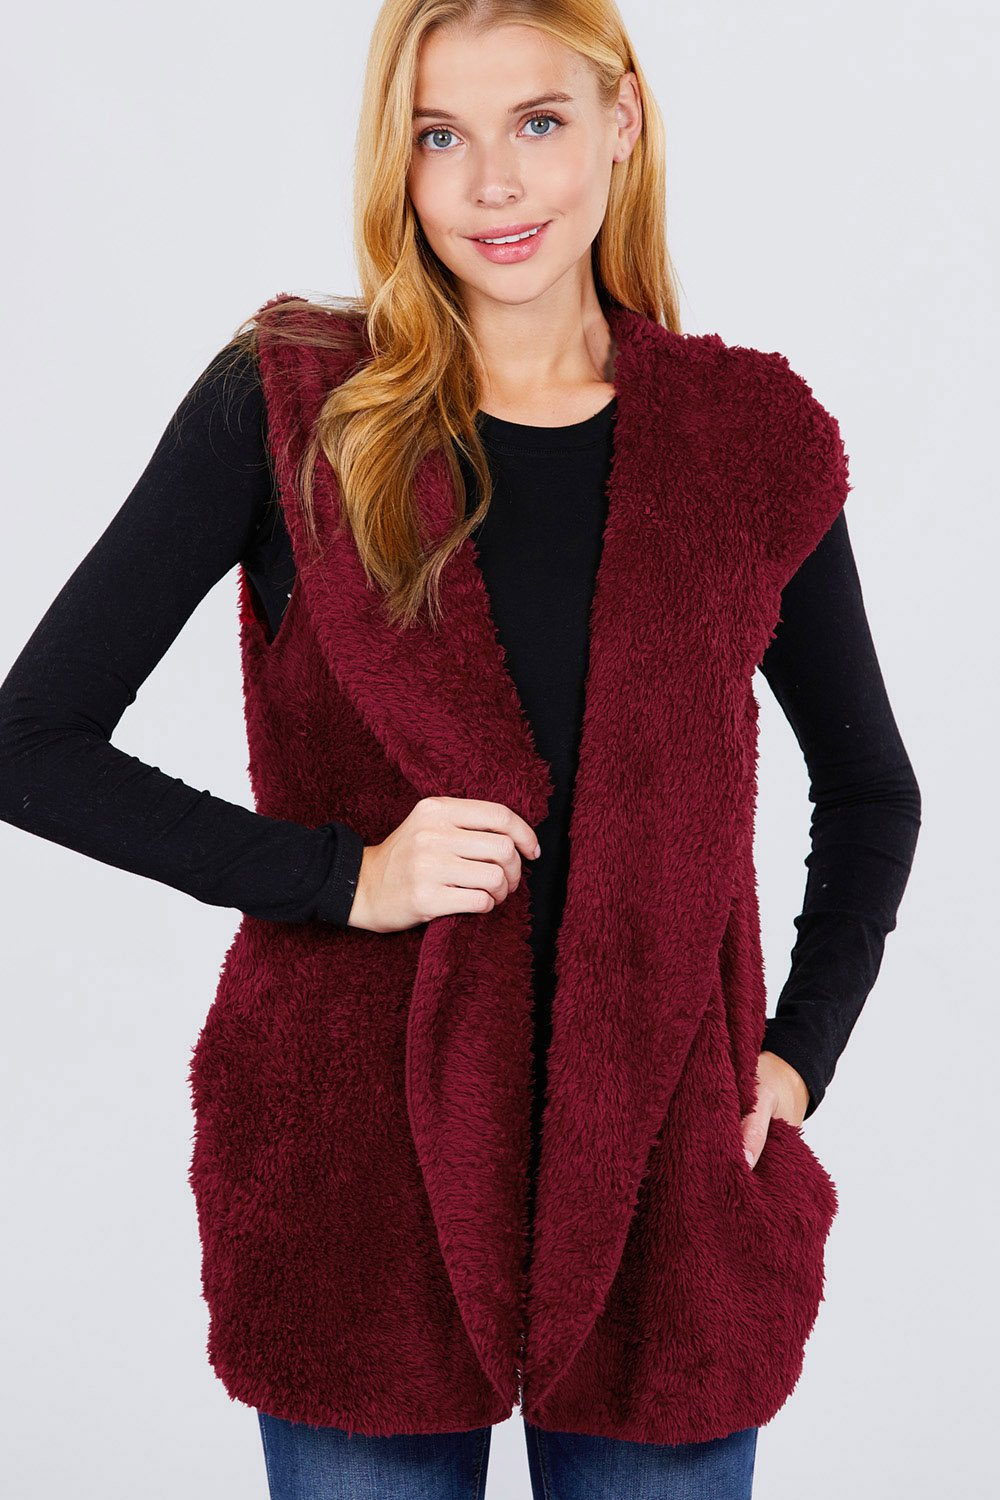 Faux Fur Fluffy Vest - Boujee Boutique Incorporated